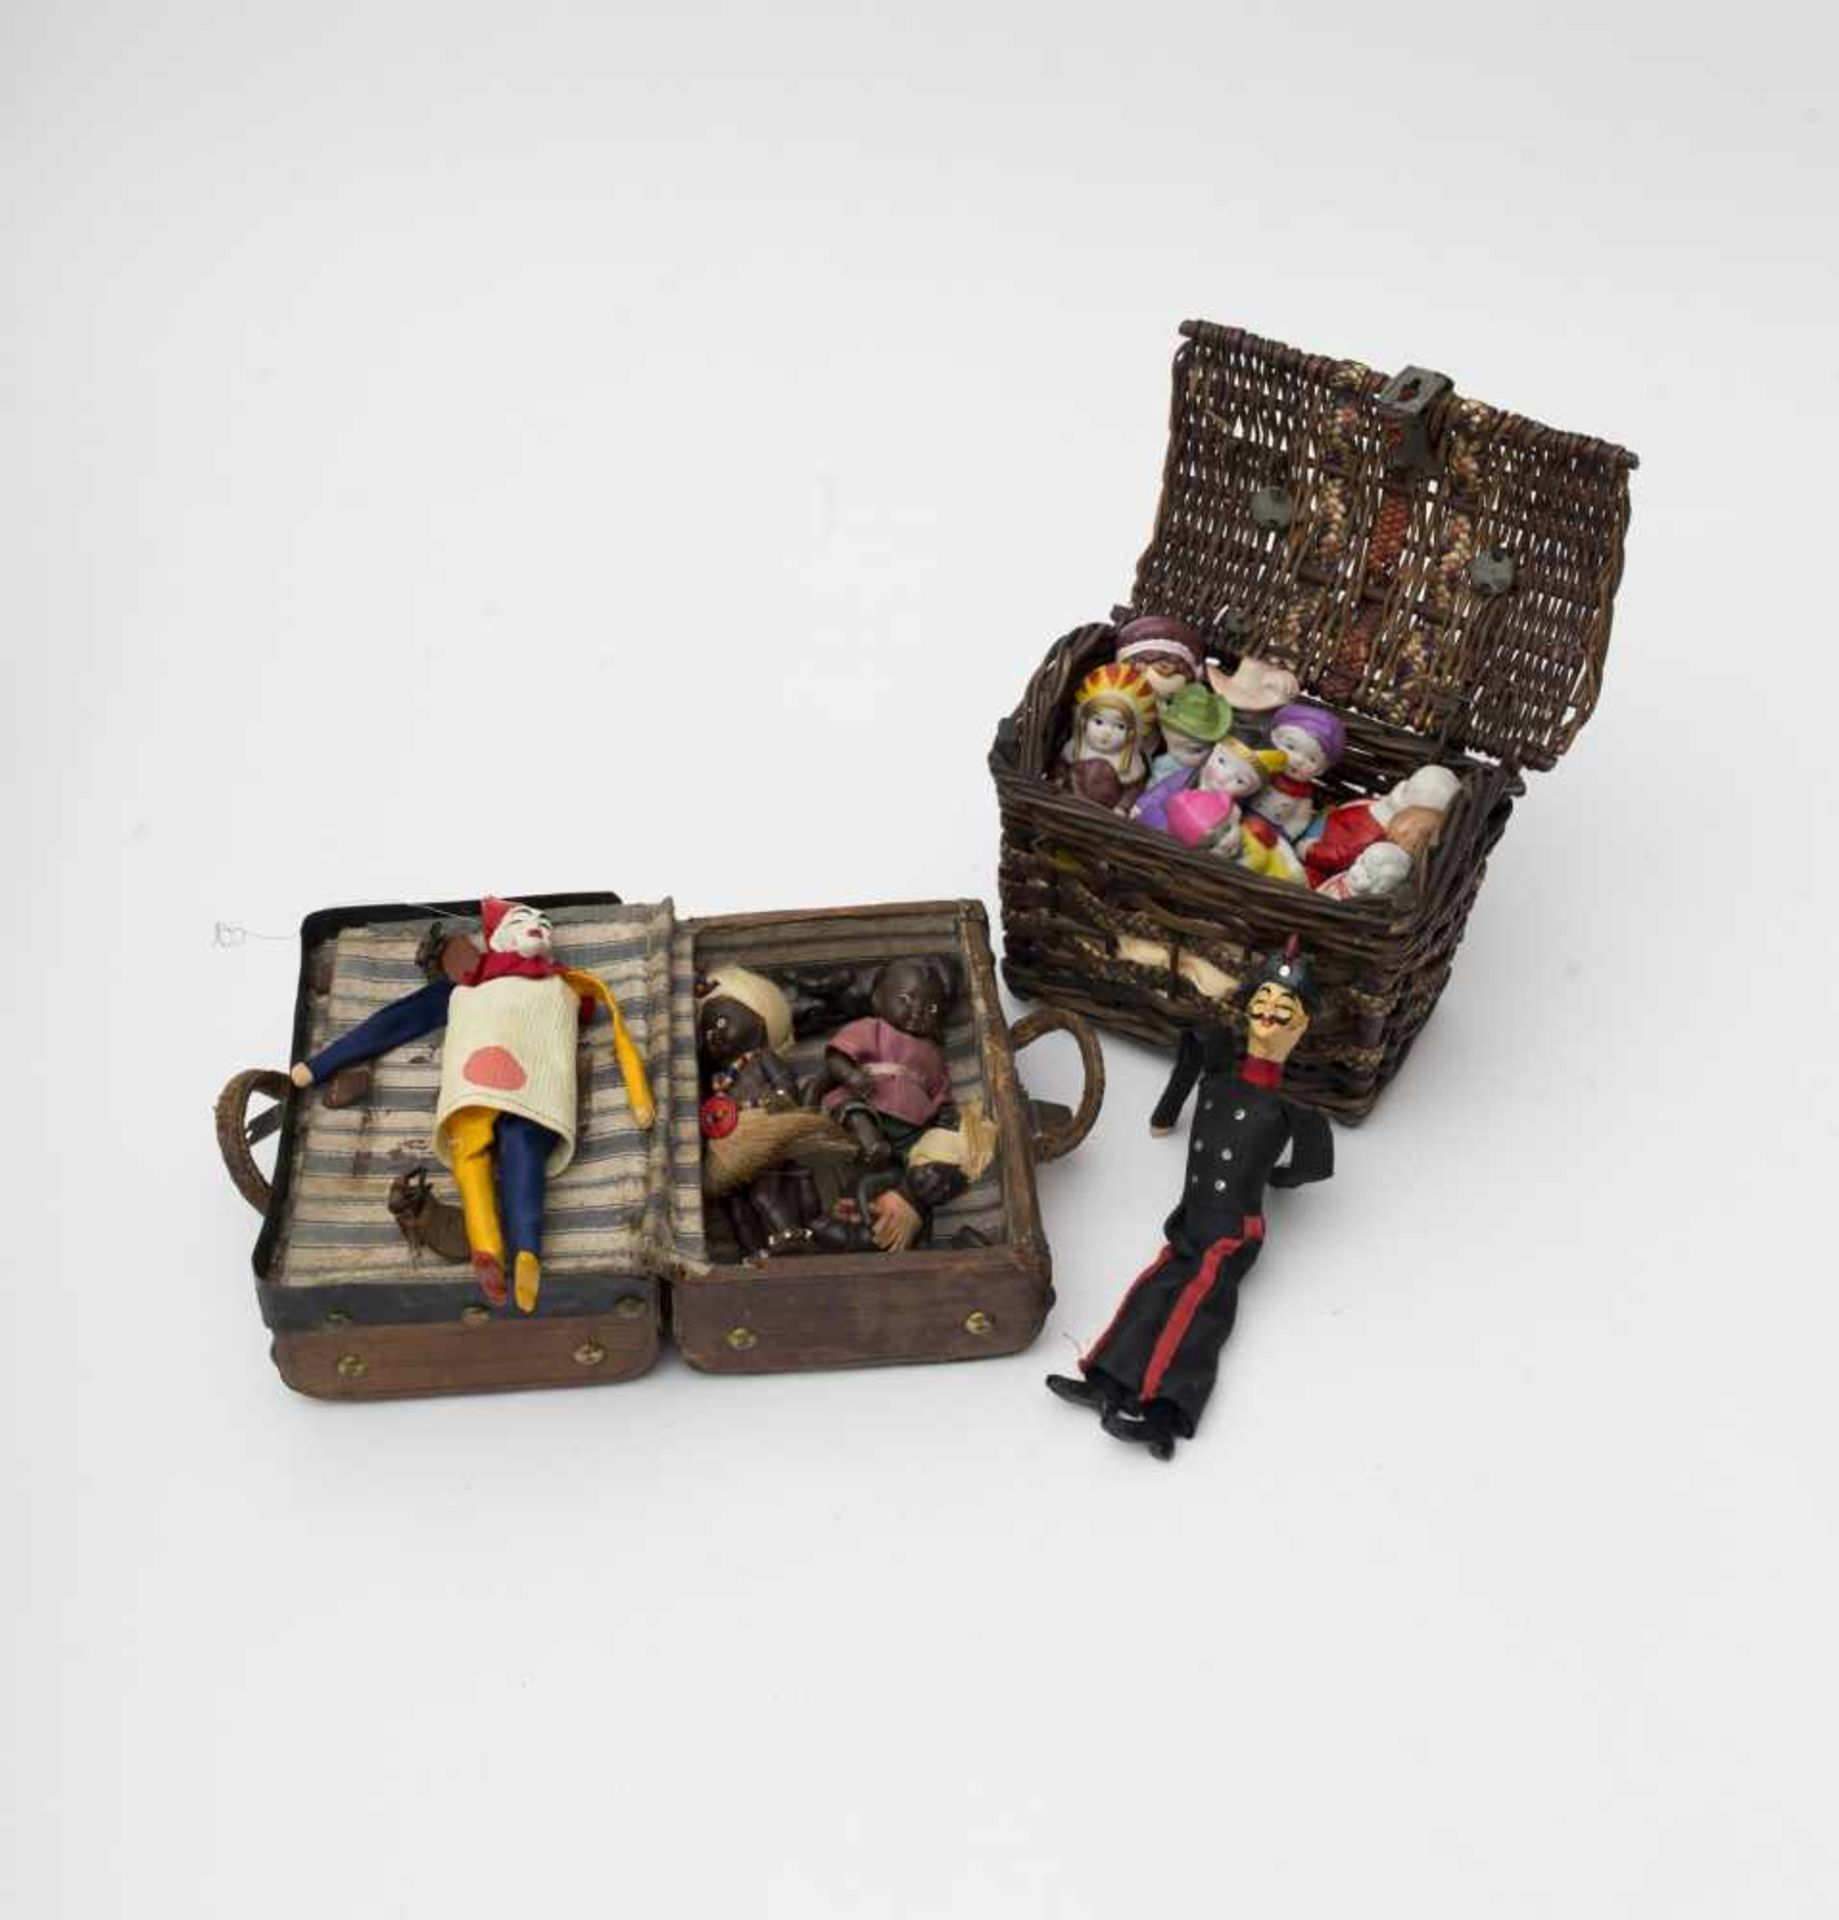 Wicker basket Containing decorative biscuit and cartoon figures (12 pieces.), and a small travel - Bild 2 aus 2